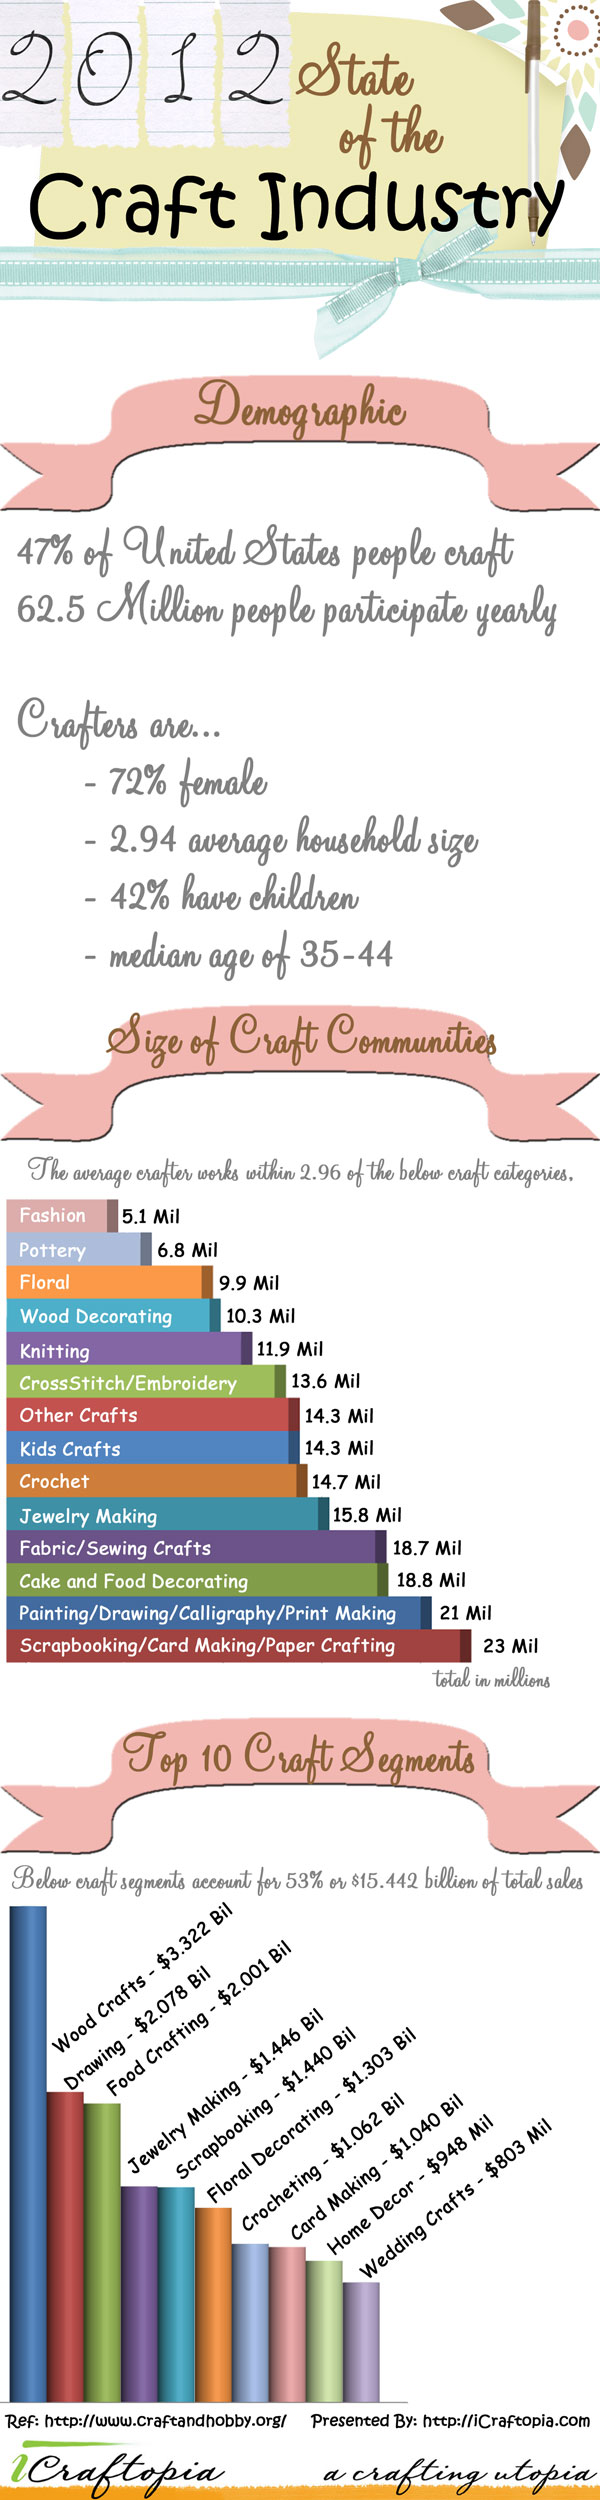 2012-State-of-the-Craft-Industry-Infographic